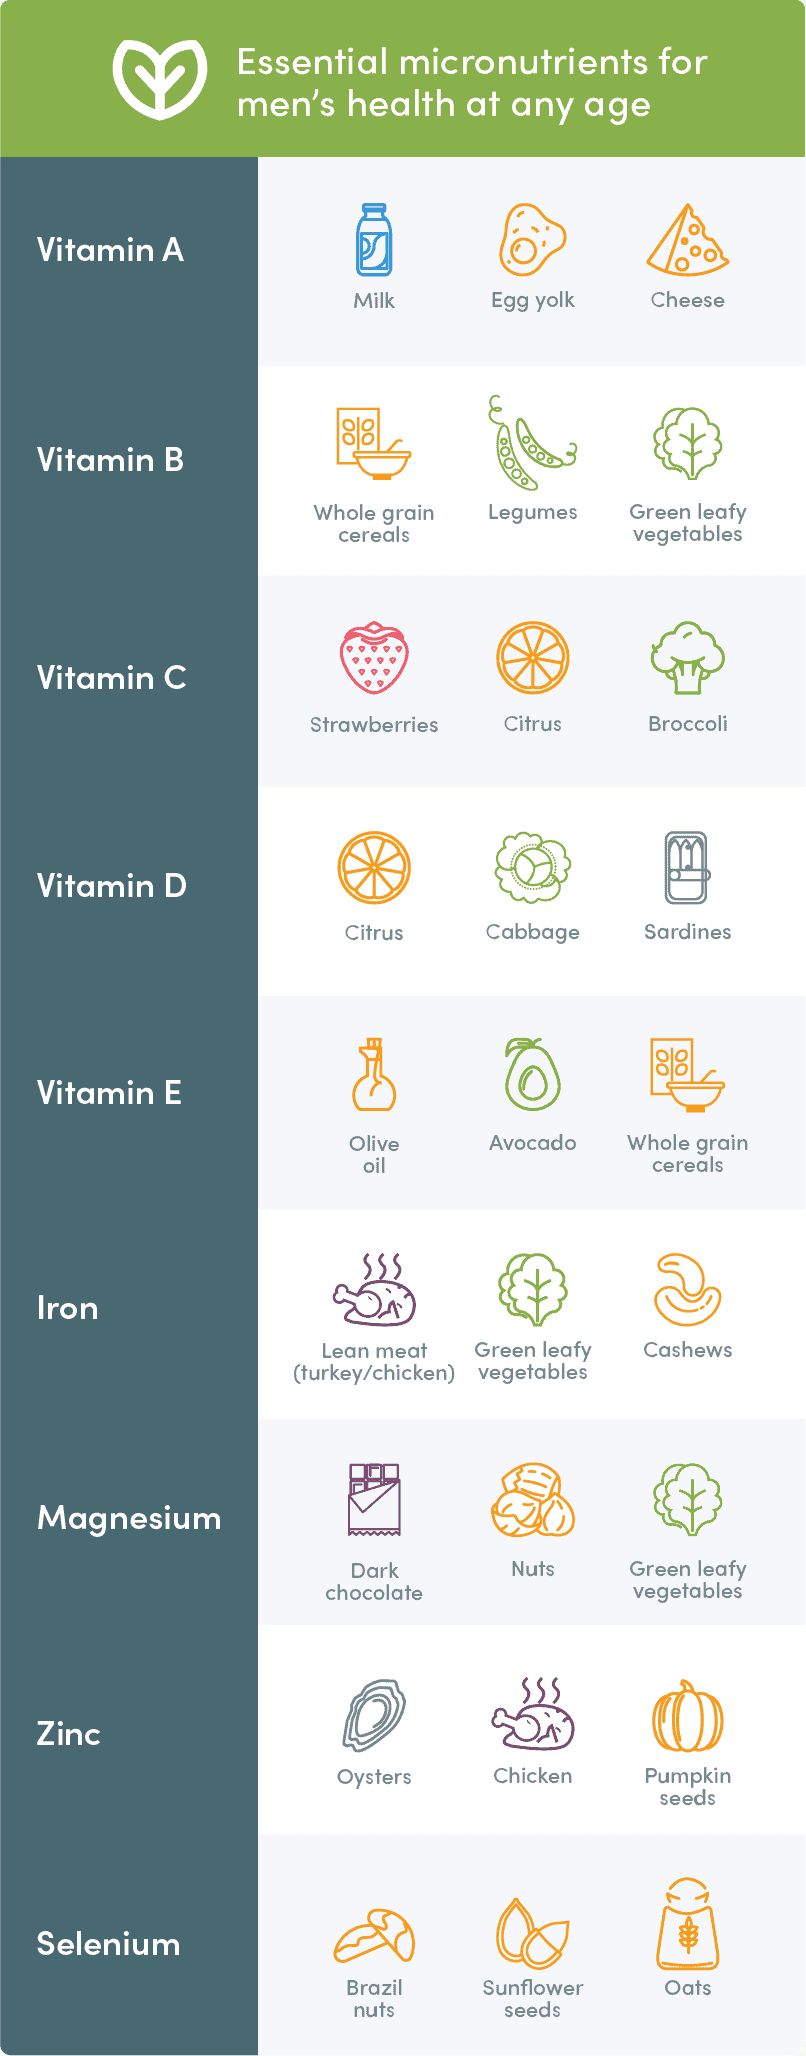 text with icons showing essential micronutrients for mens's health at any age